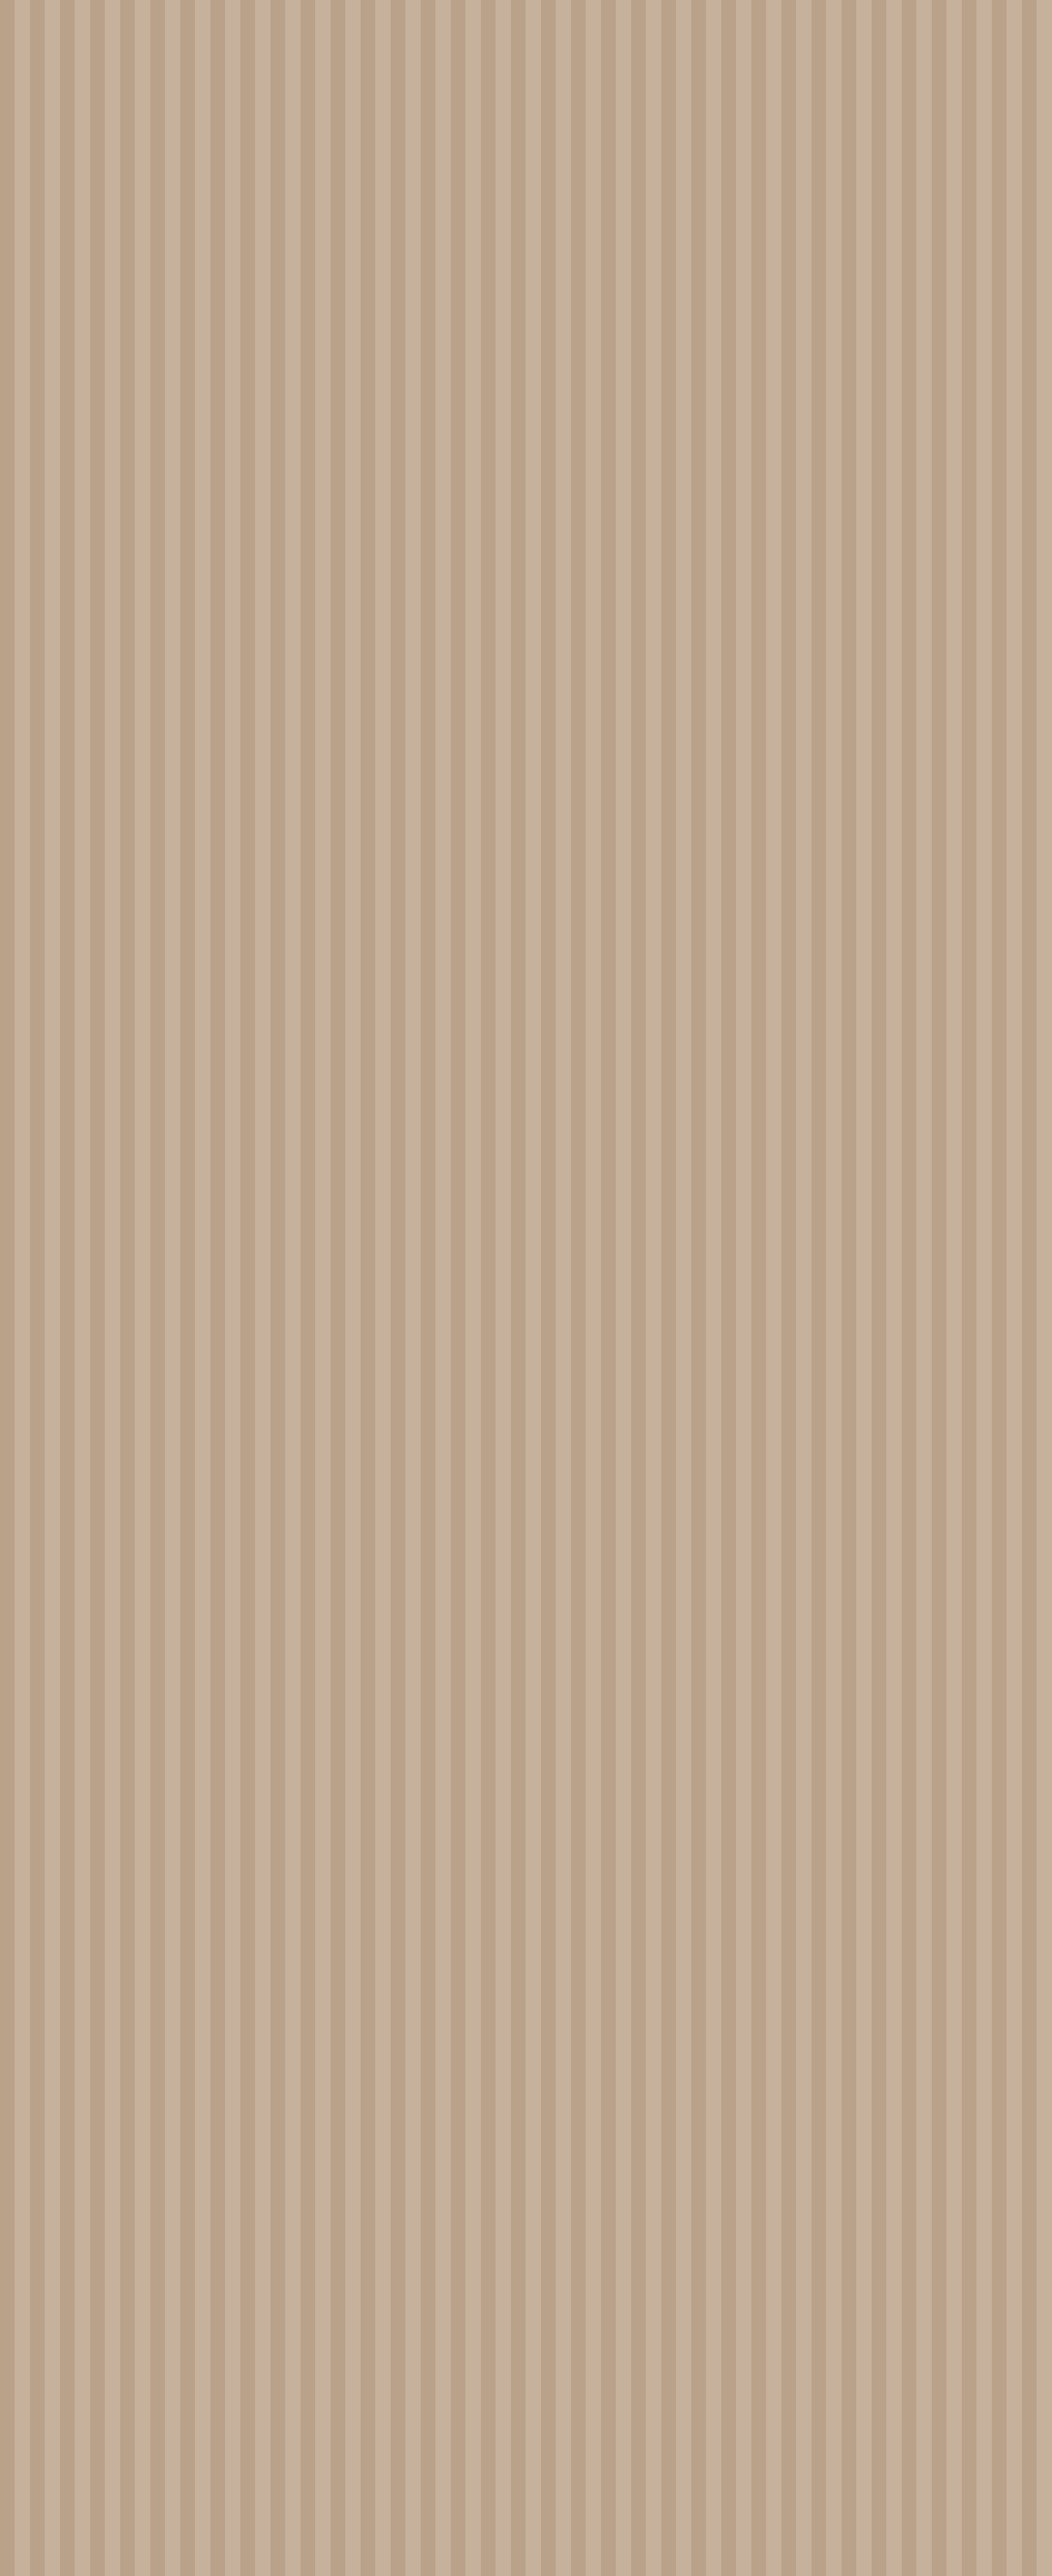 Sweet Vintage Background Stripe 04 by Gasara